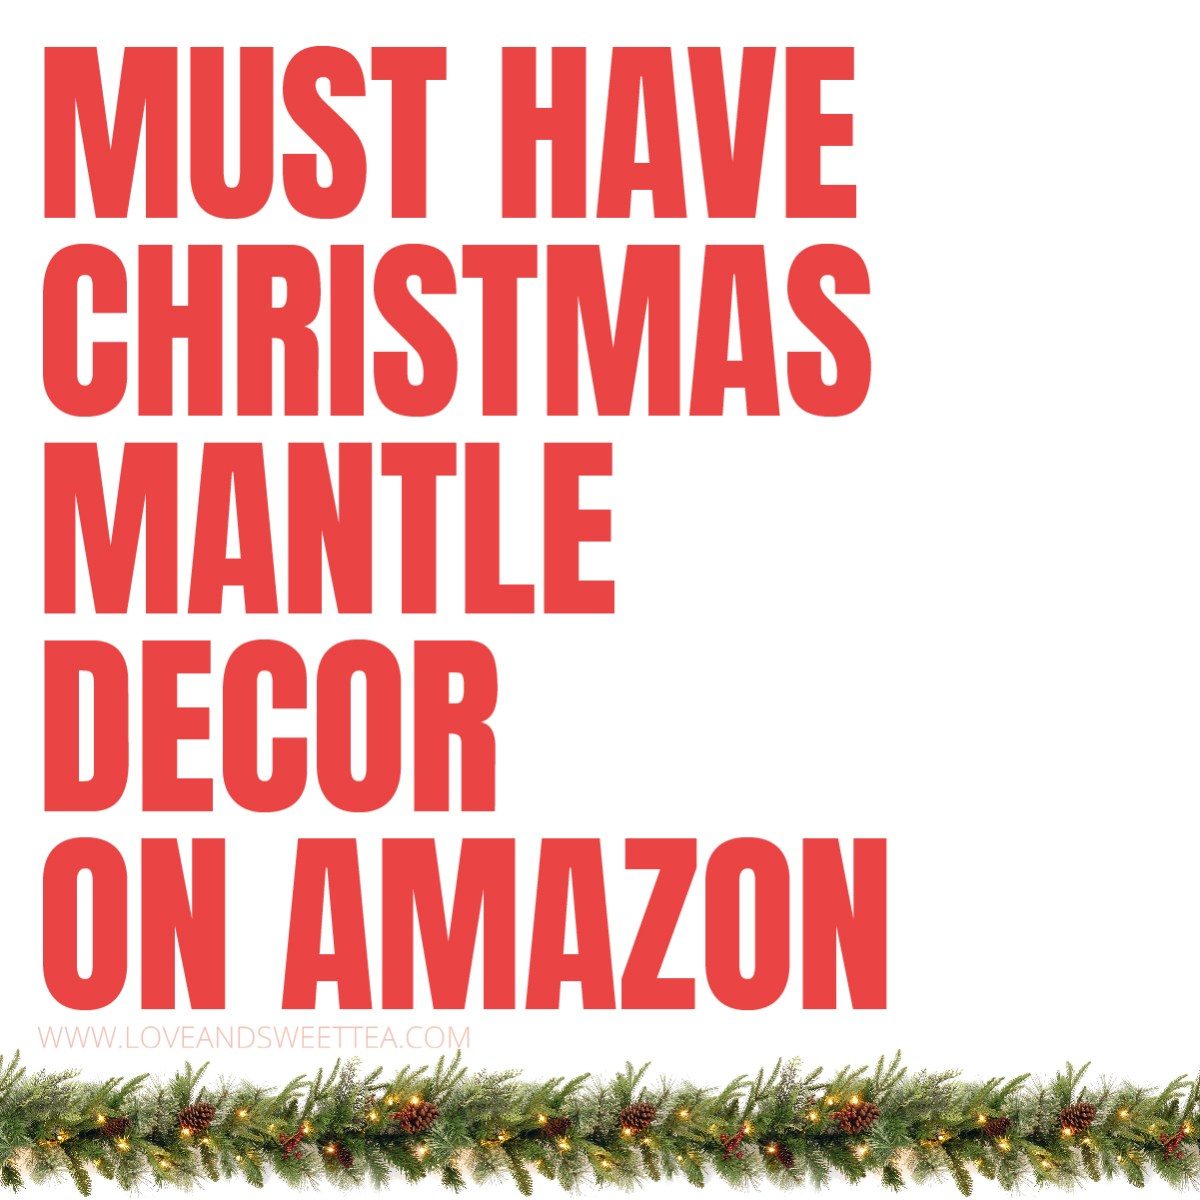 Christmas Mantle Decor on Amazon